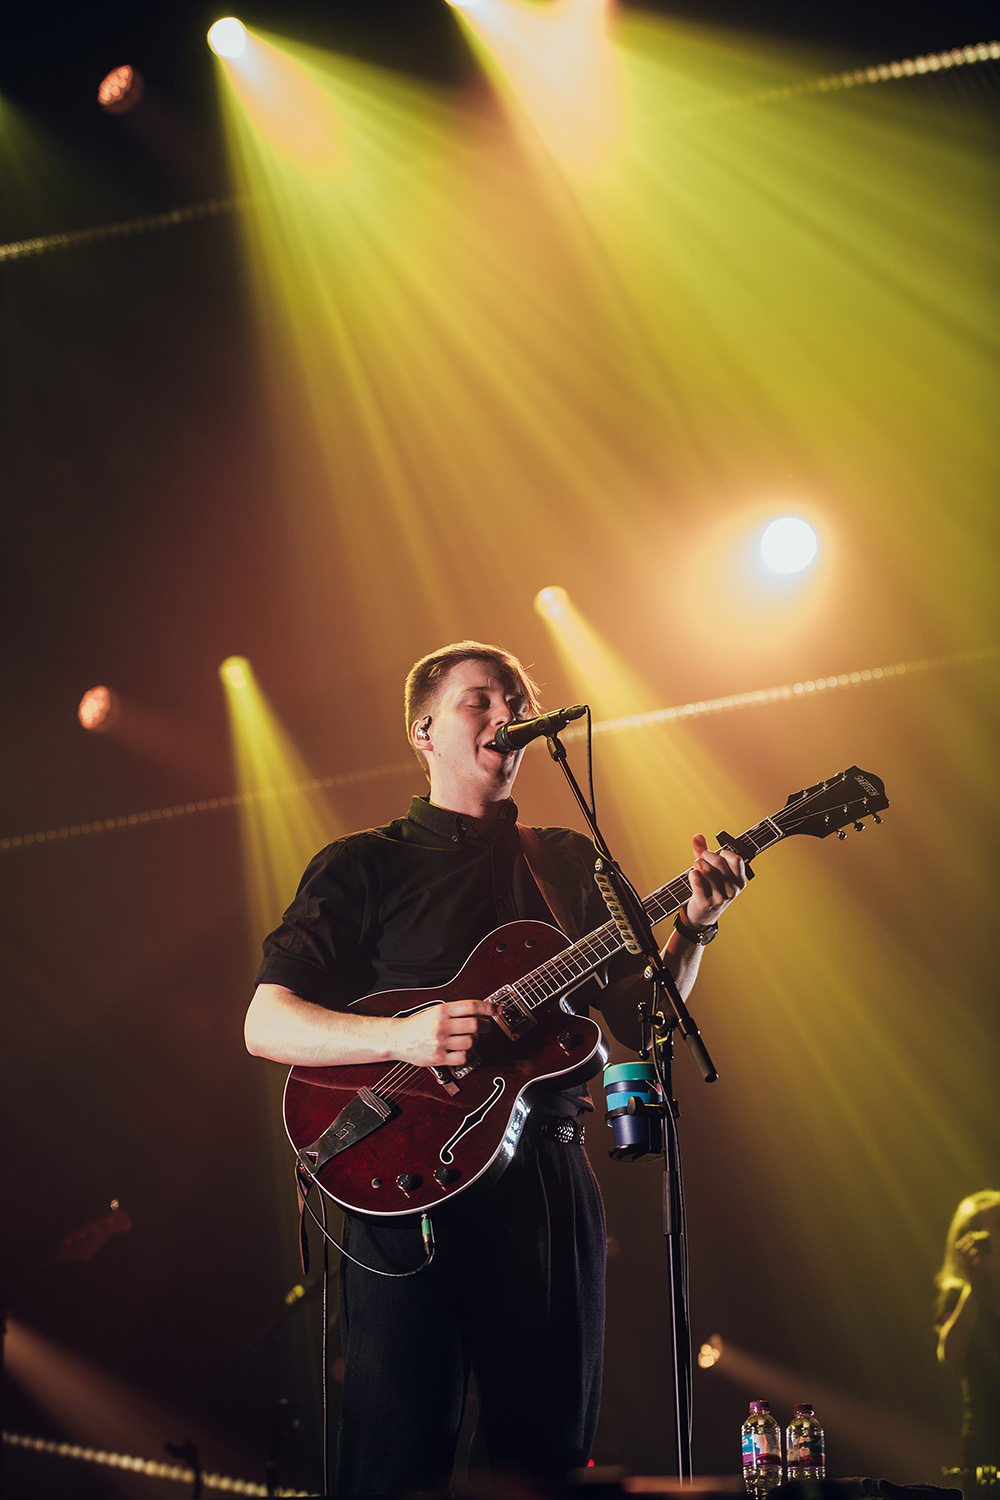 George_Ezra_151118_Communion-(4-of-44).jpg